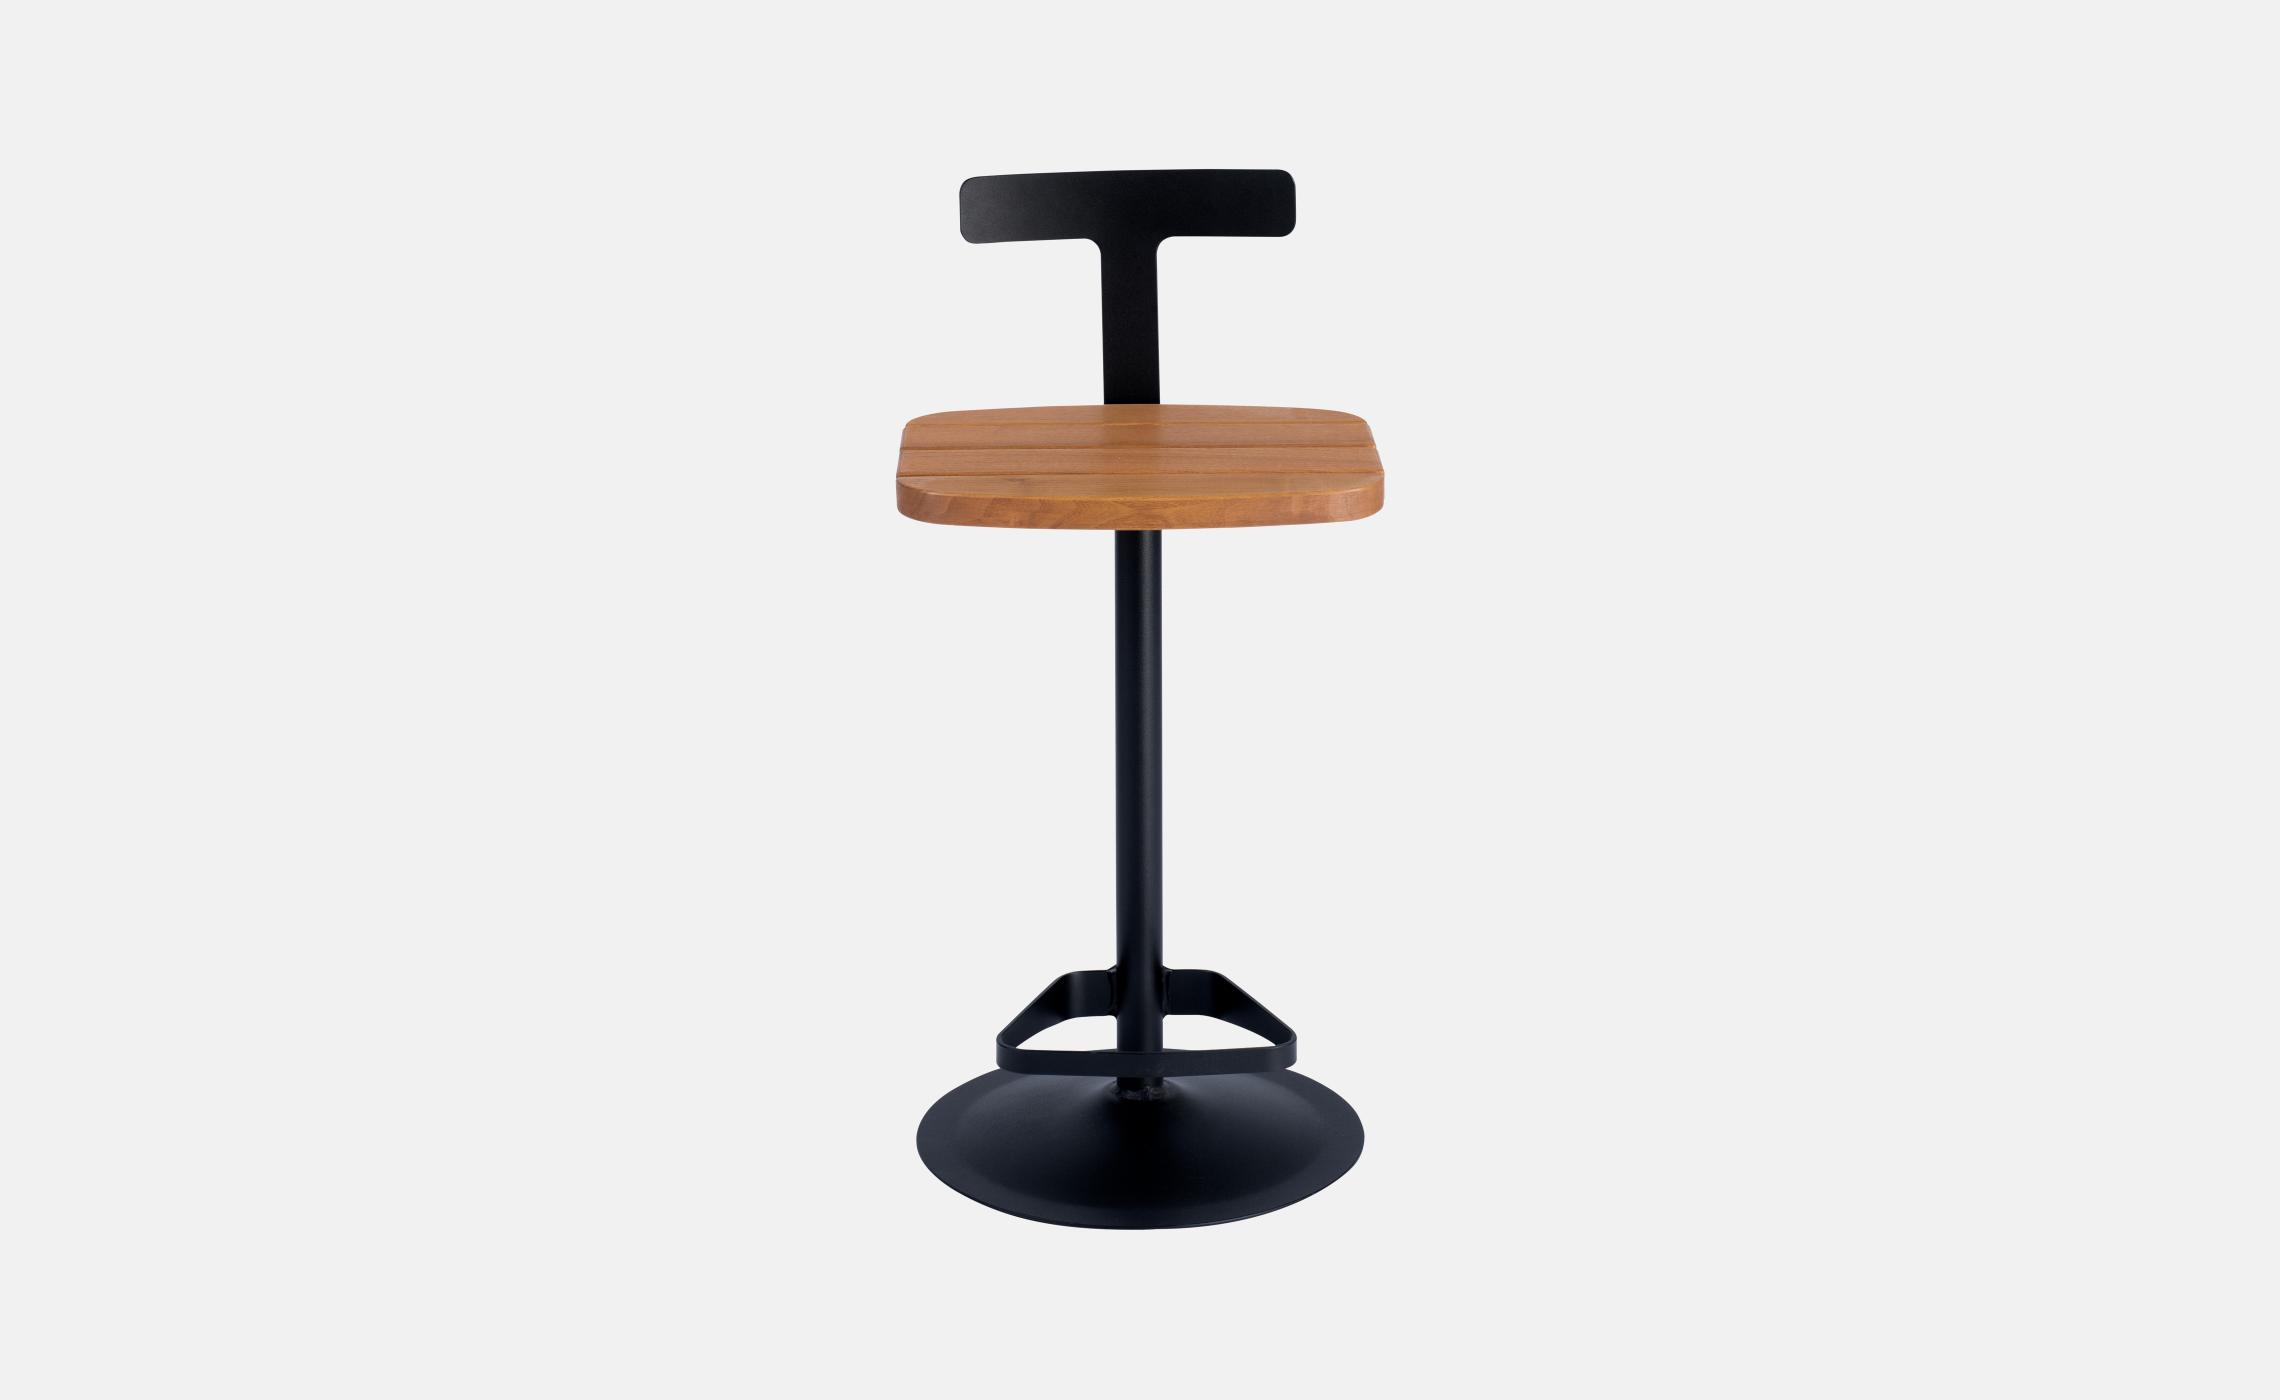 tabouret moderne m tal et assise bois agape delorme meubles. Black Bedroom Furniture Sets. Home Design Ideas